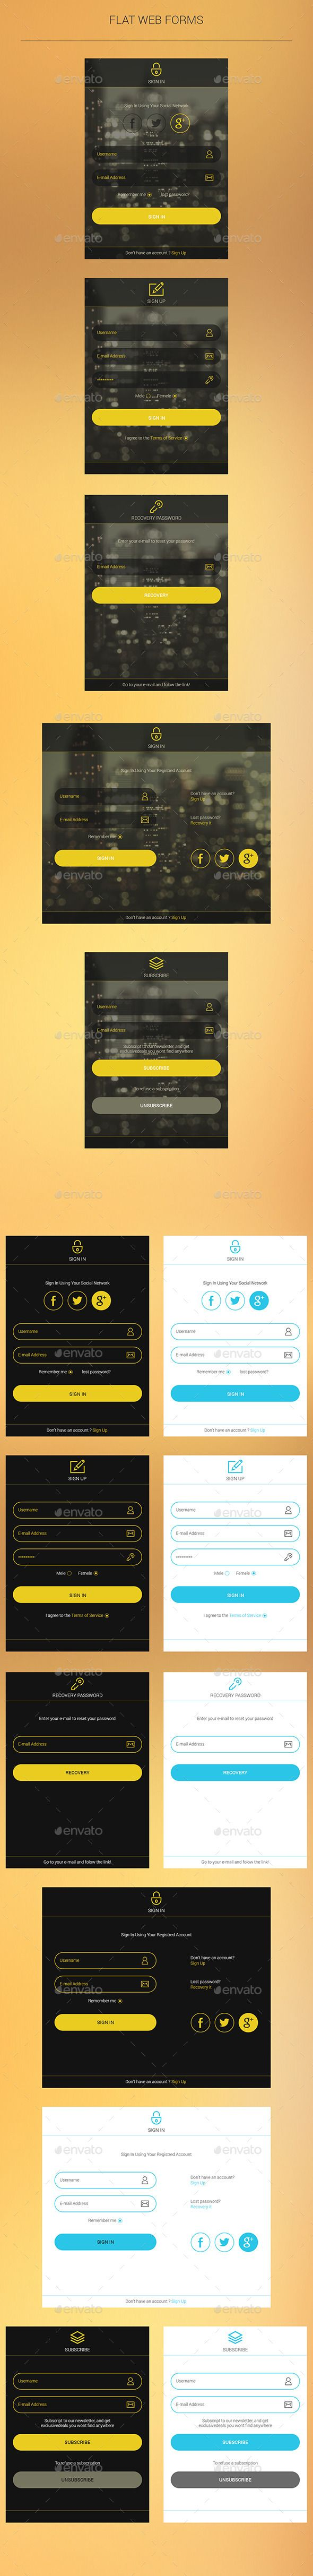 Pin by best Graphic Design on Web Forms Web forms